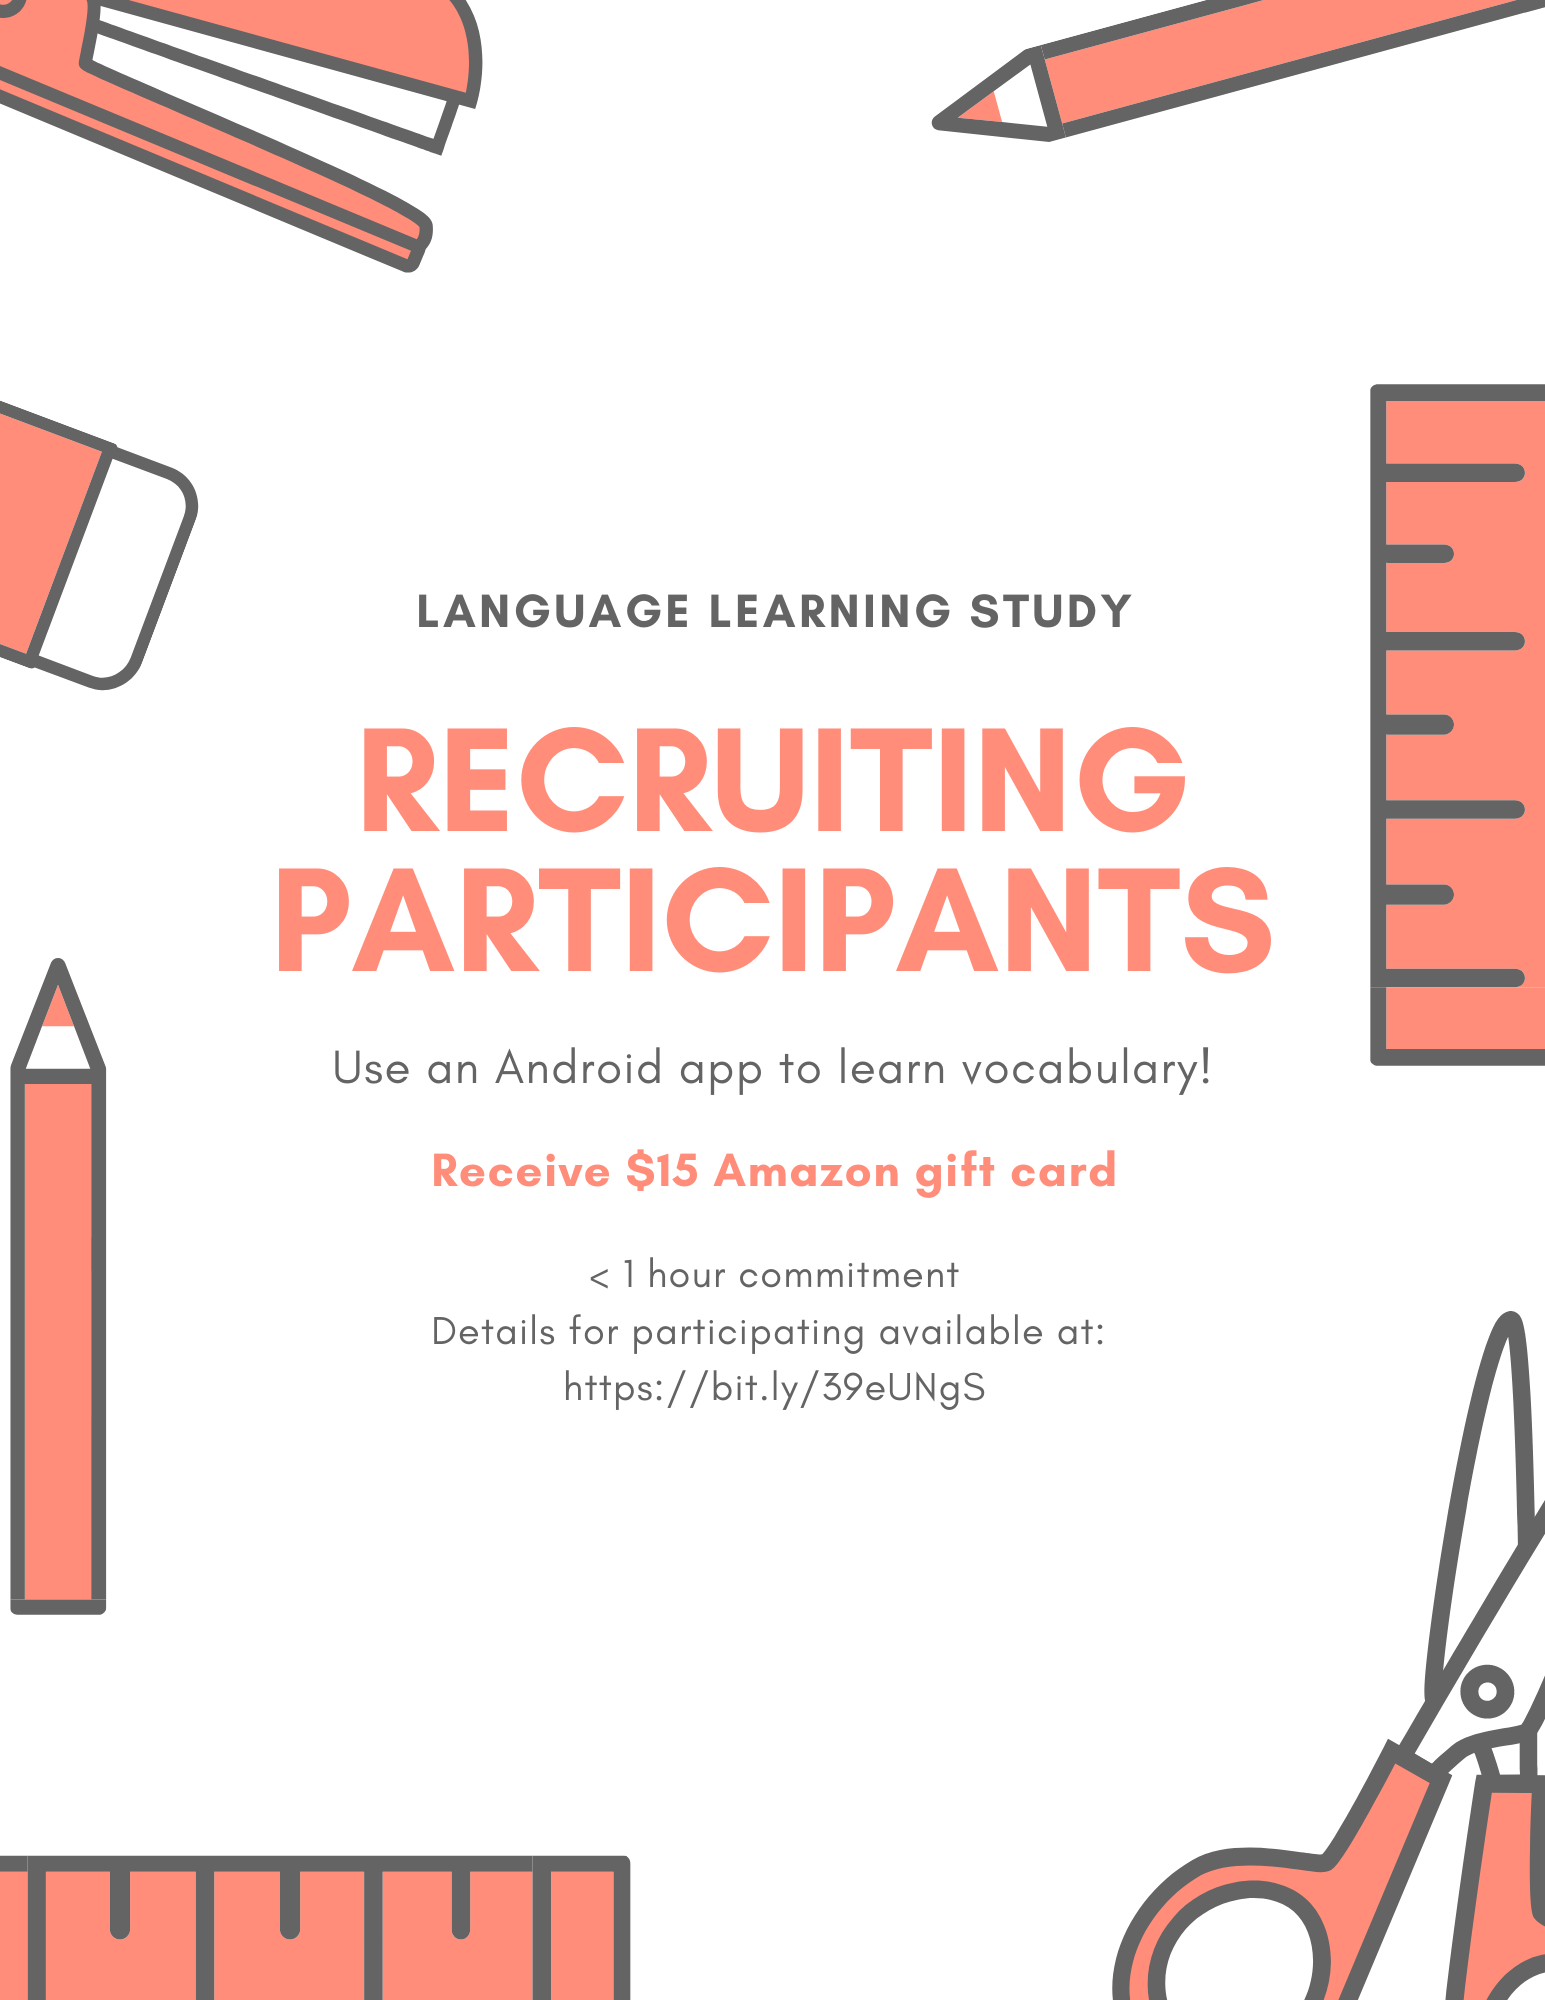 Recruiting participants for an Android app Language learning study